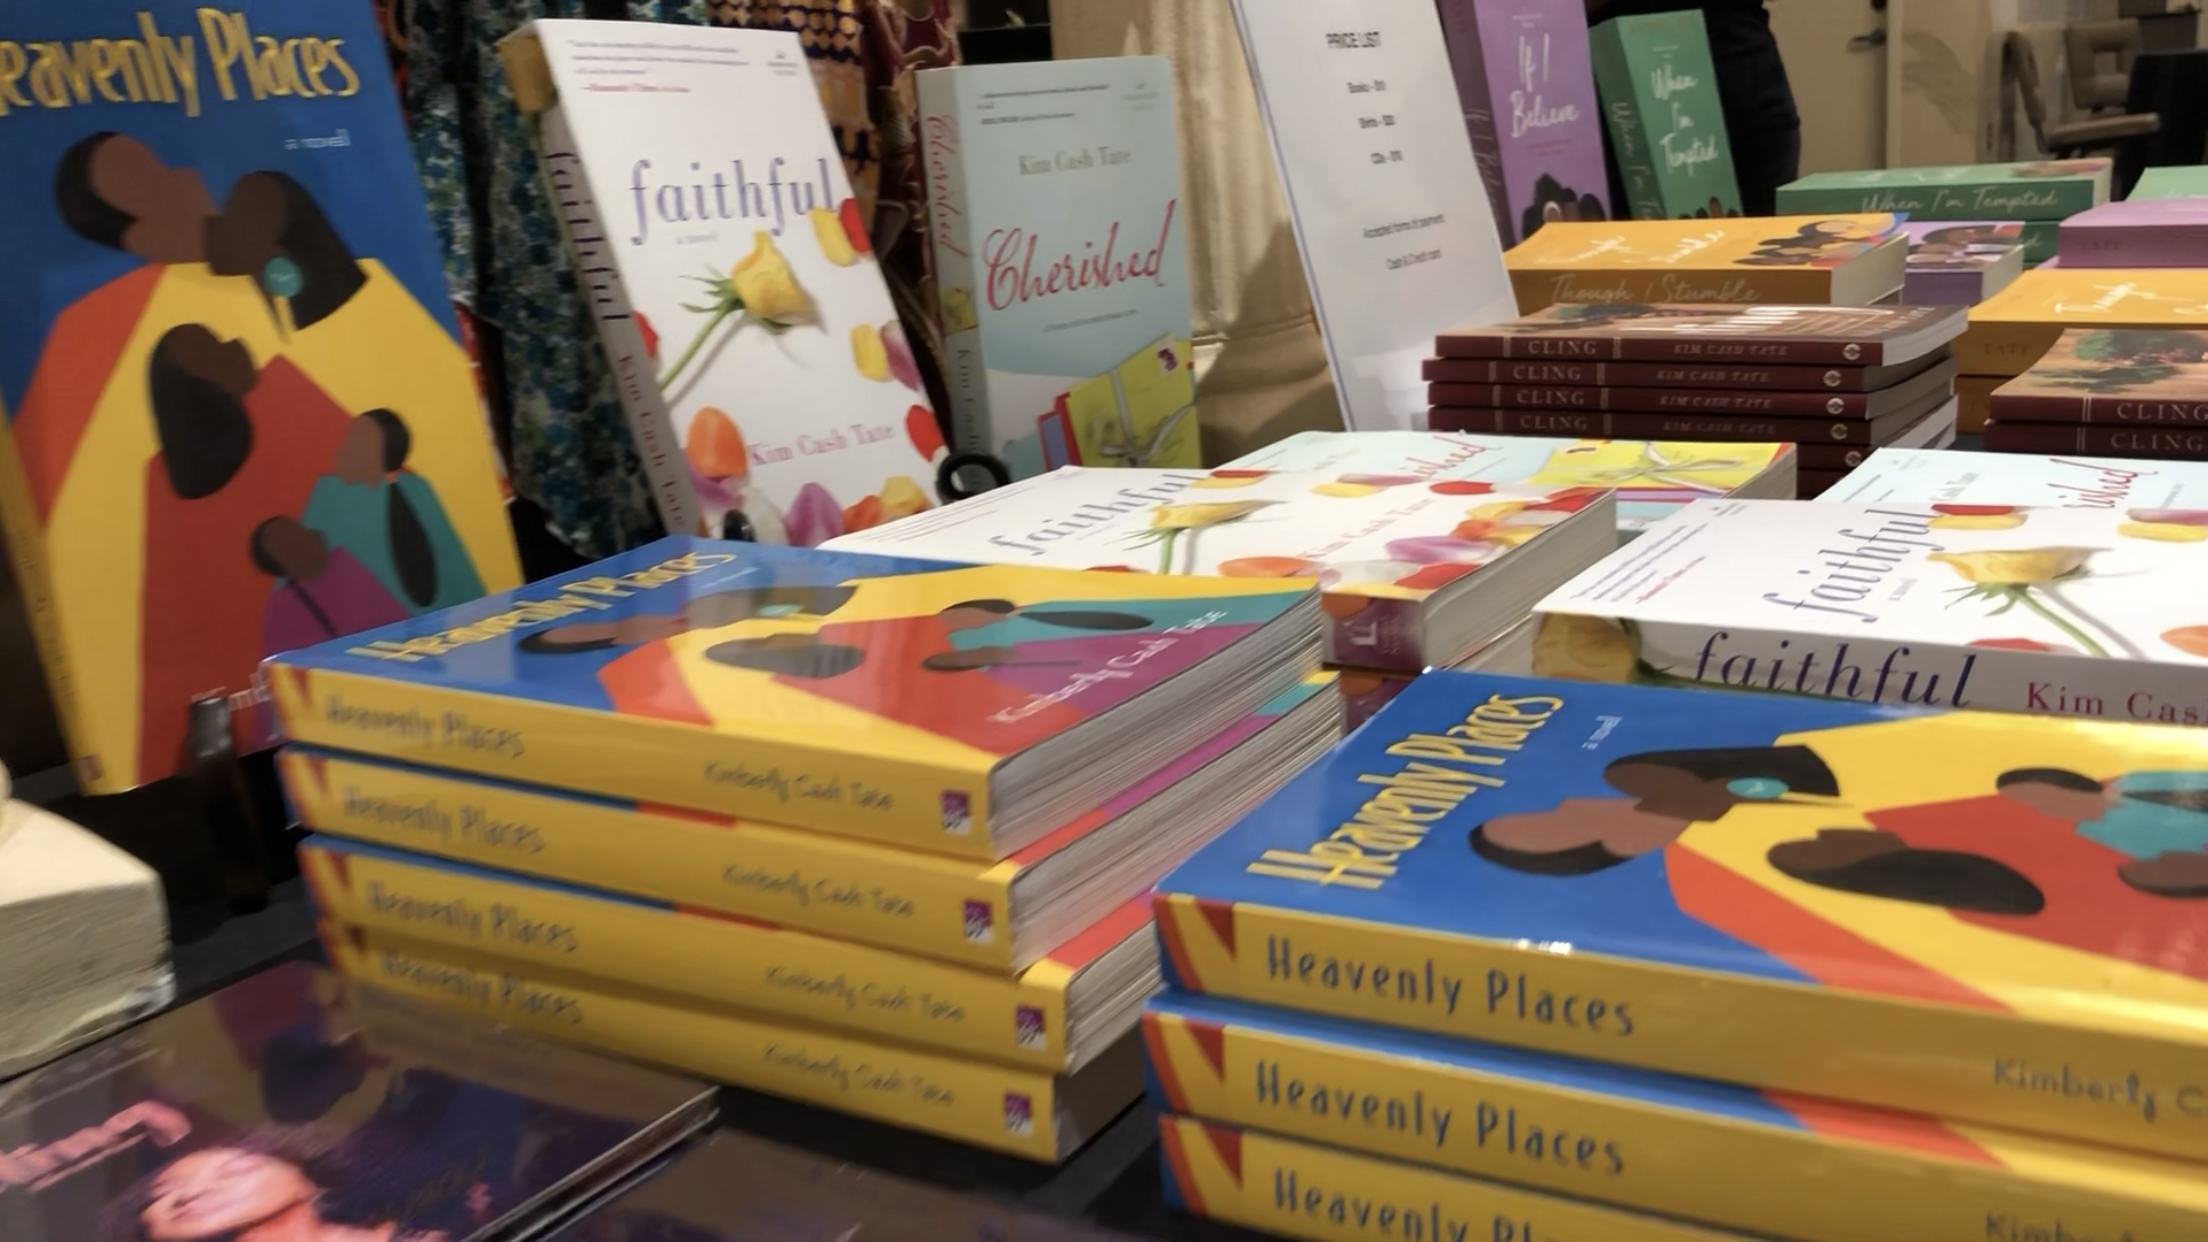 KIM's LAtest books - Check out Kim's books, including CLING, the Promises of God series, Faithful, and many more popular titles.